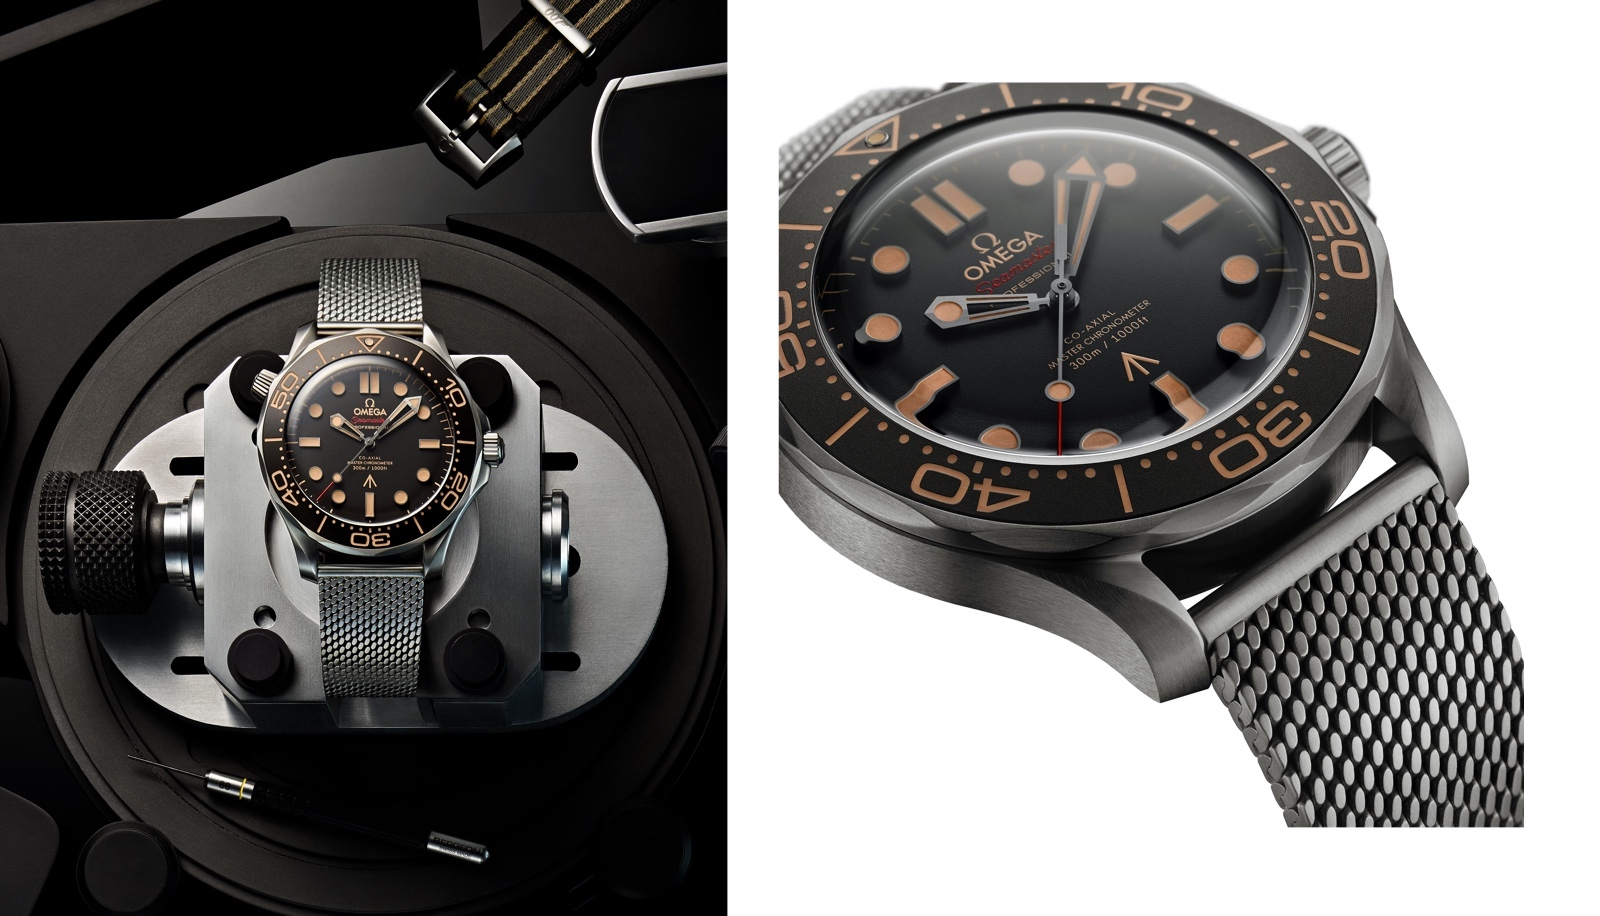 Omega-Seamaster-Diver-300M-007-Edition